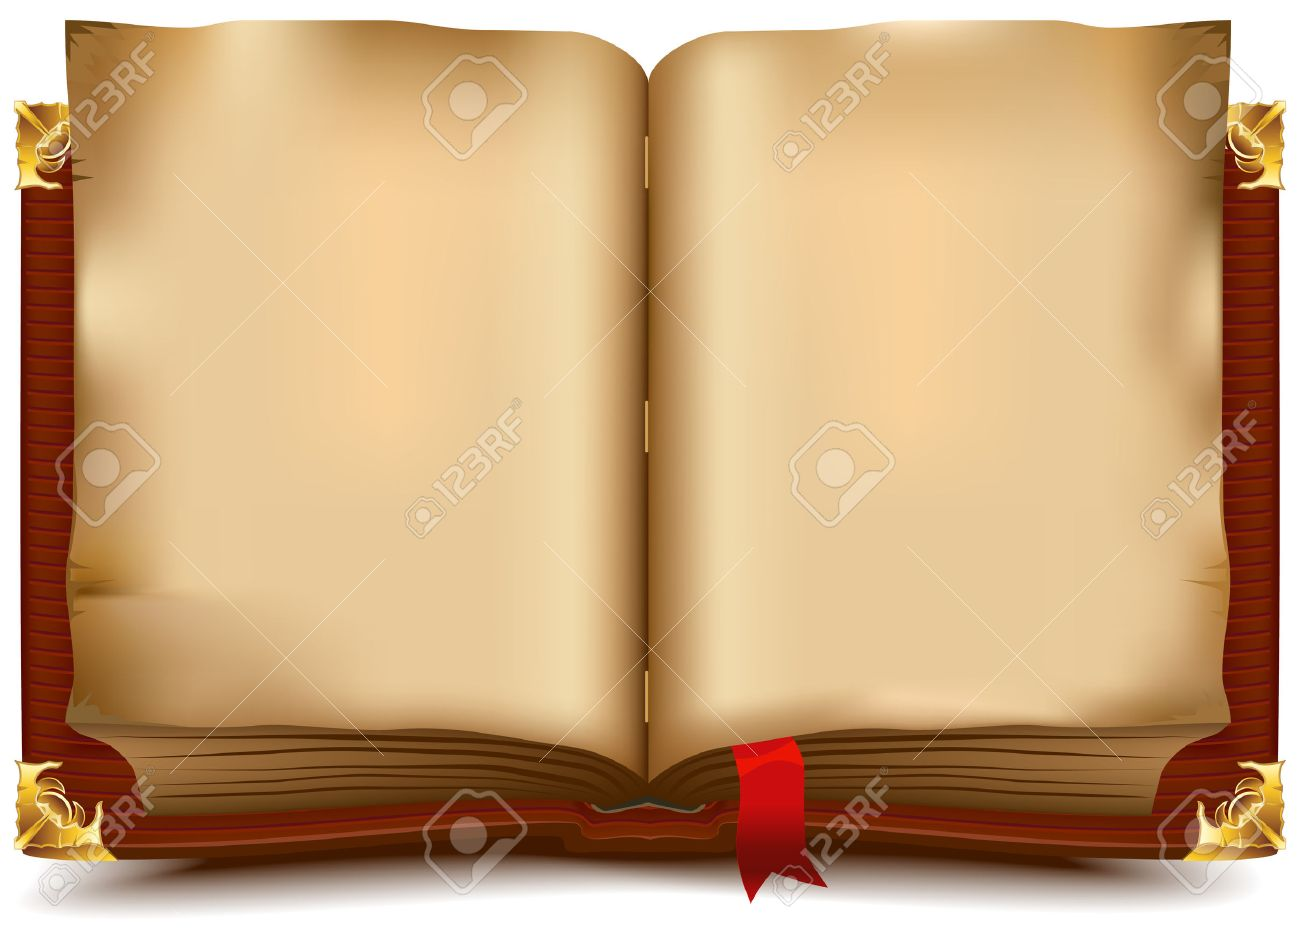 Old open book. Illustration in vector format - 31731747